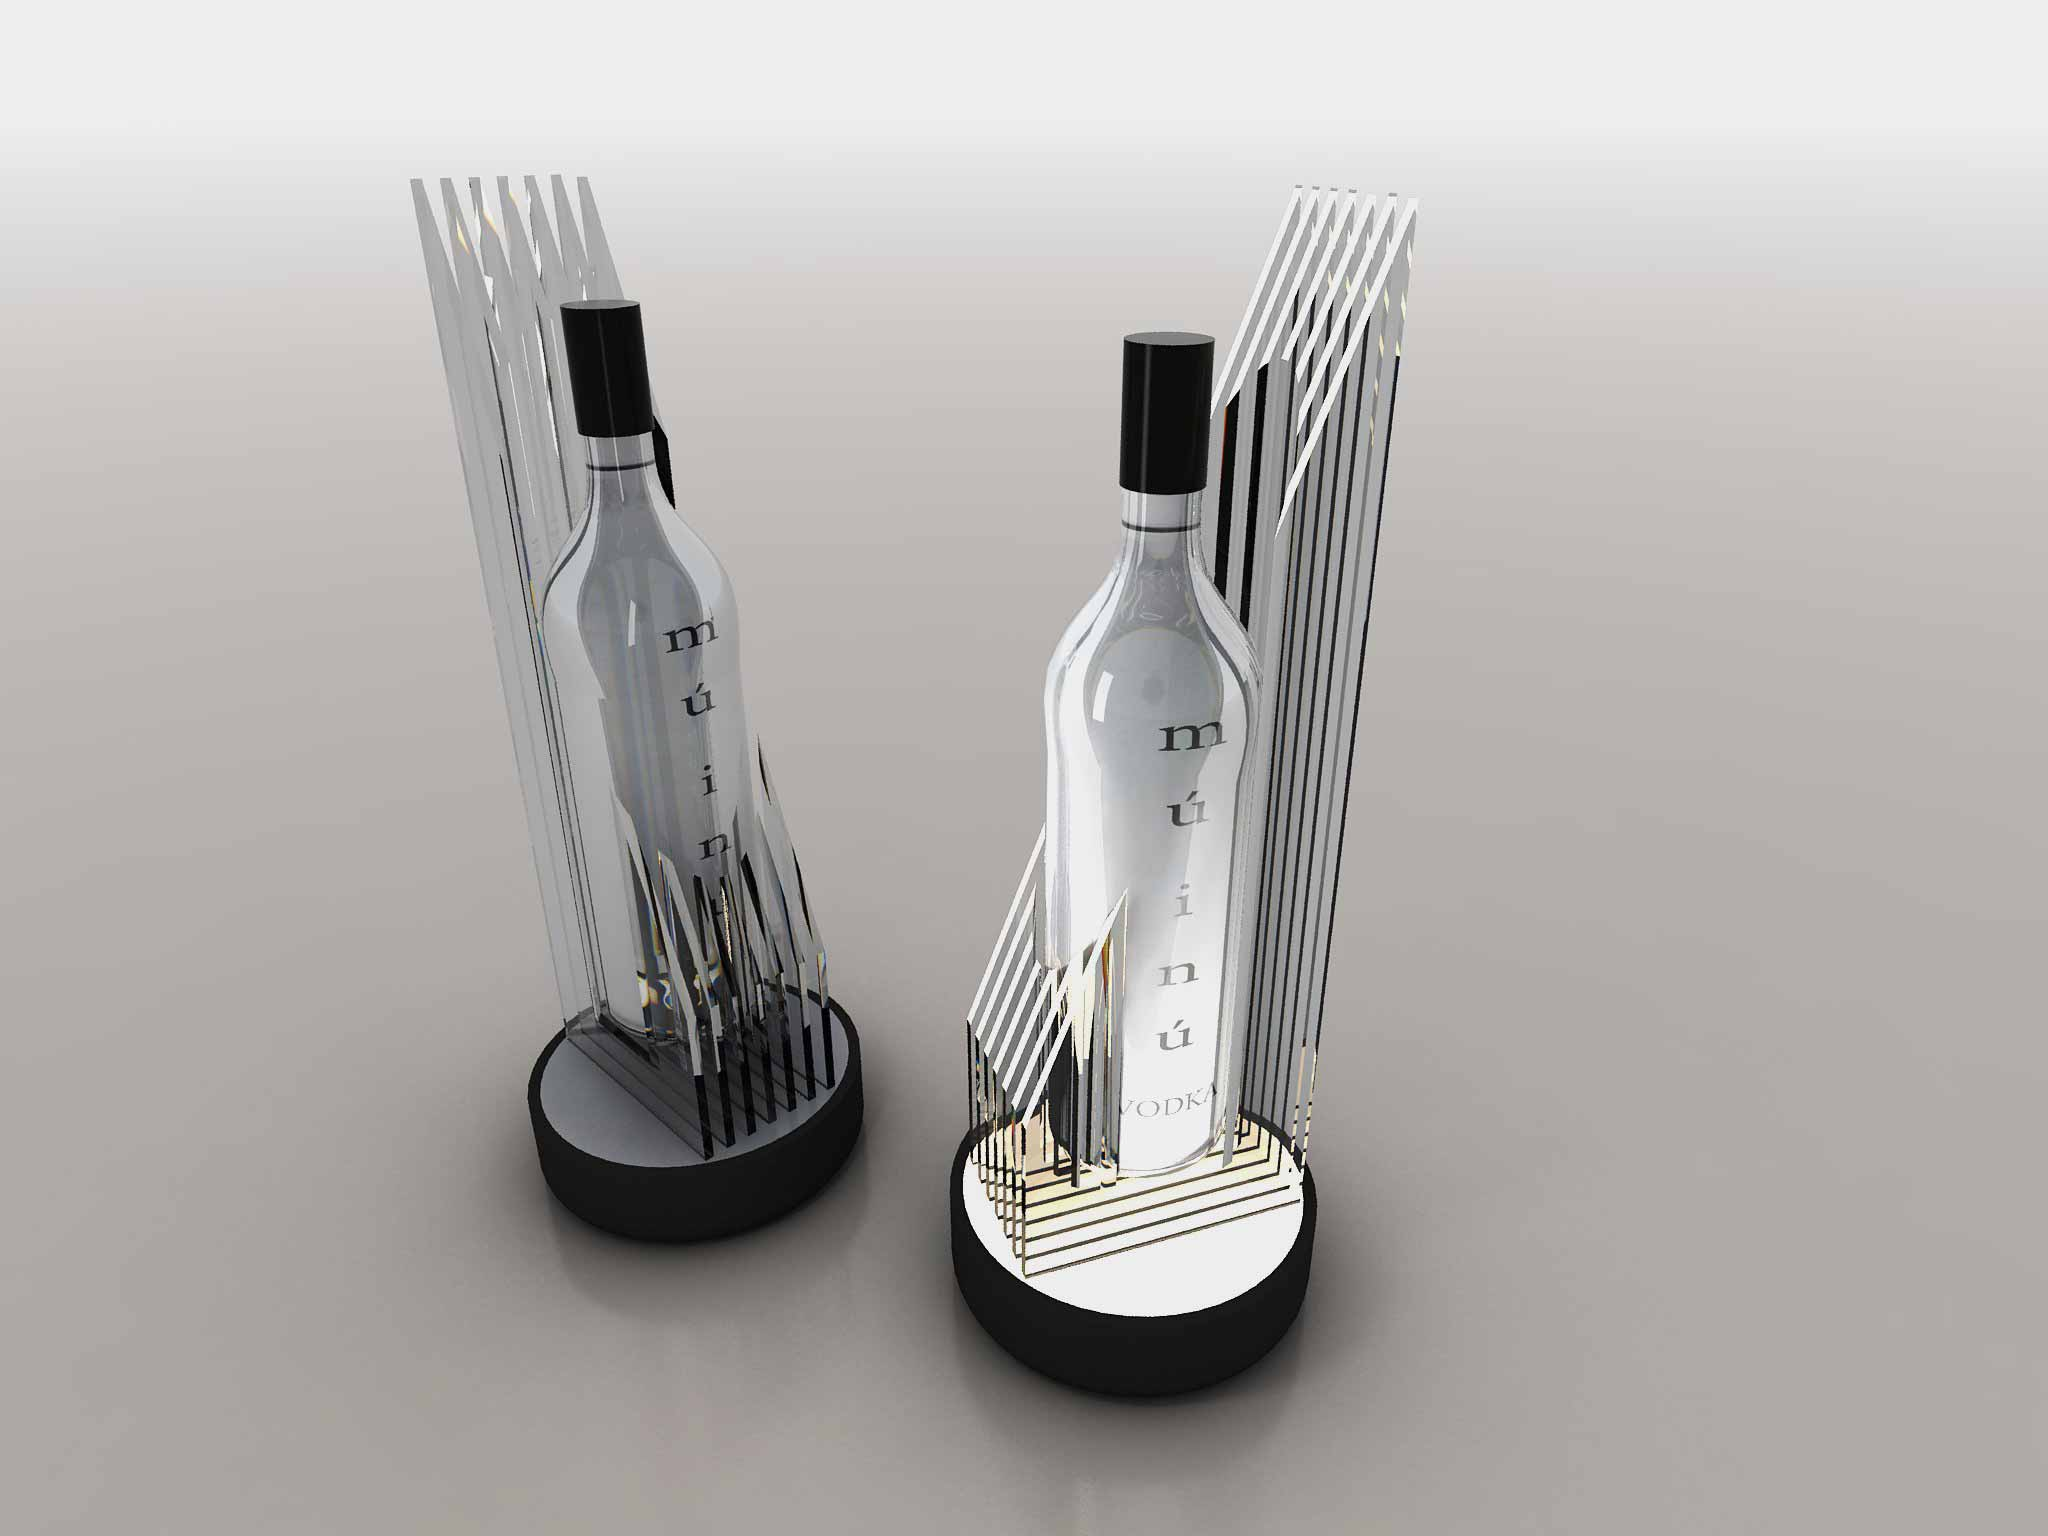 5) Vodka Lighted Counter Display